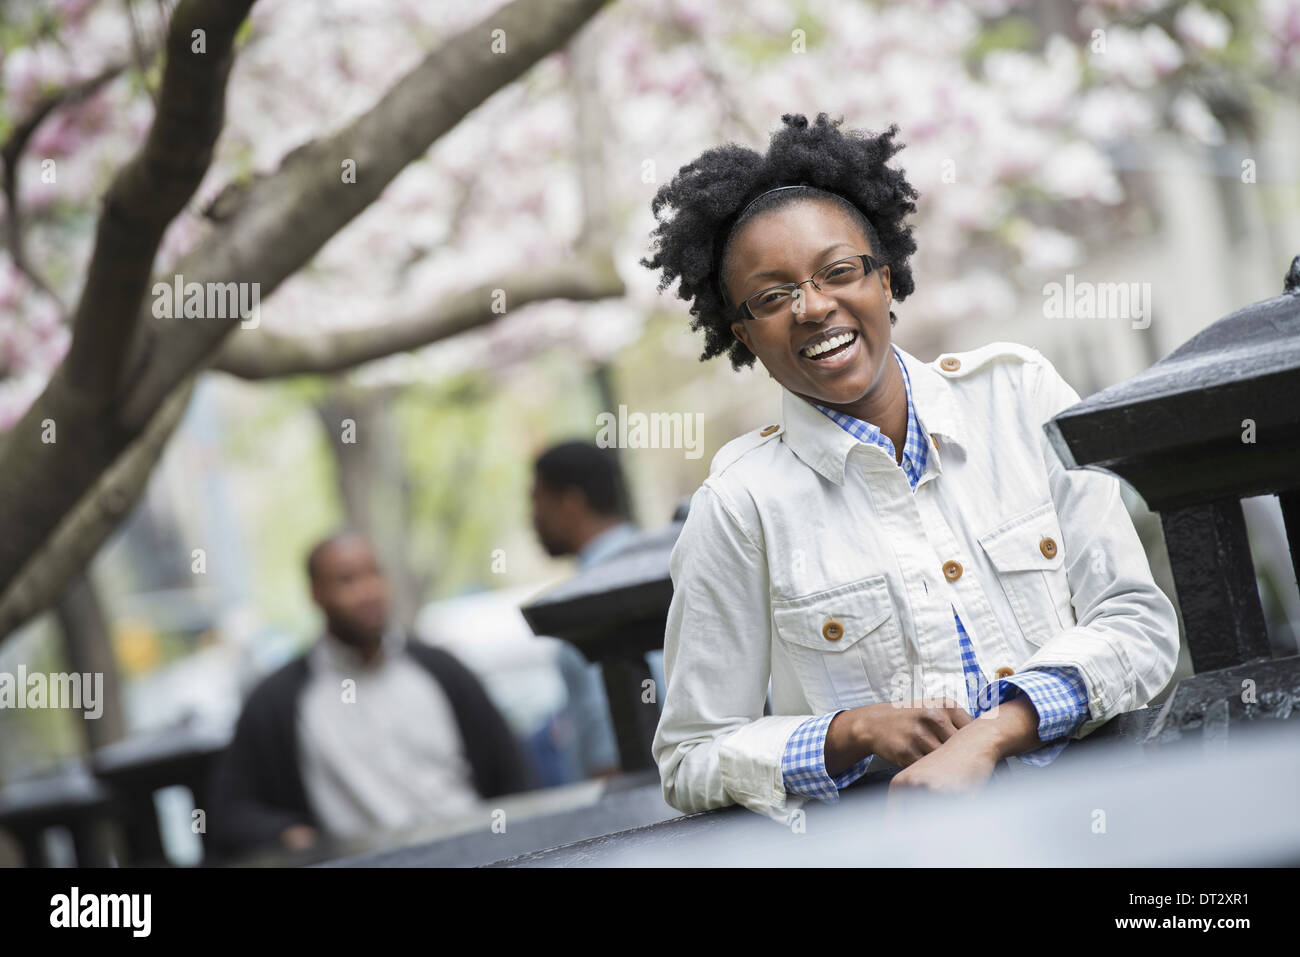 A woman seated at a table with two men in the background - Stock Image